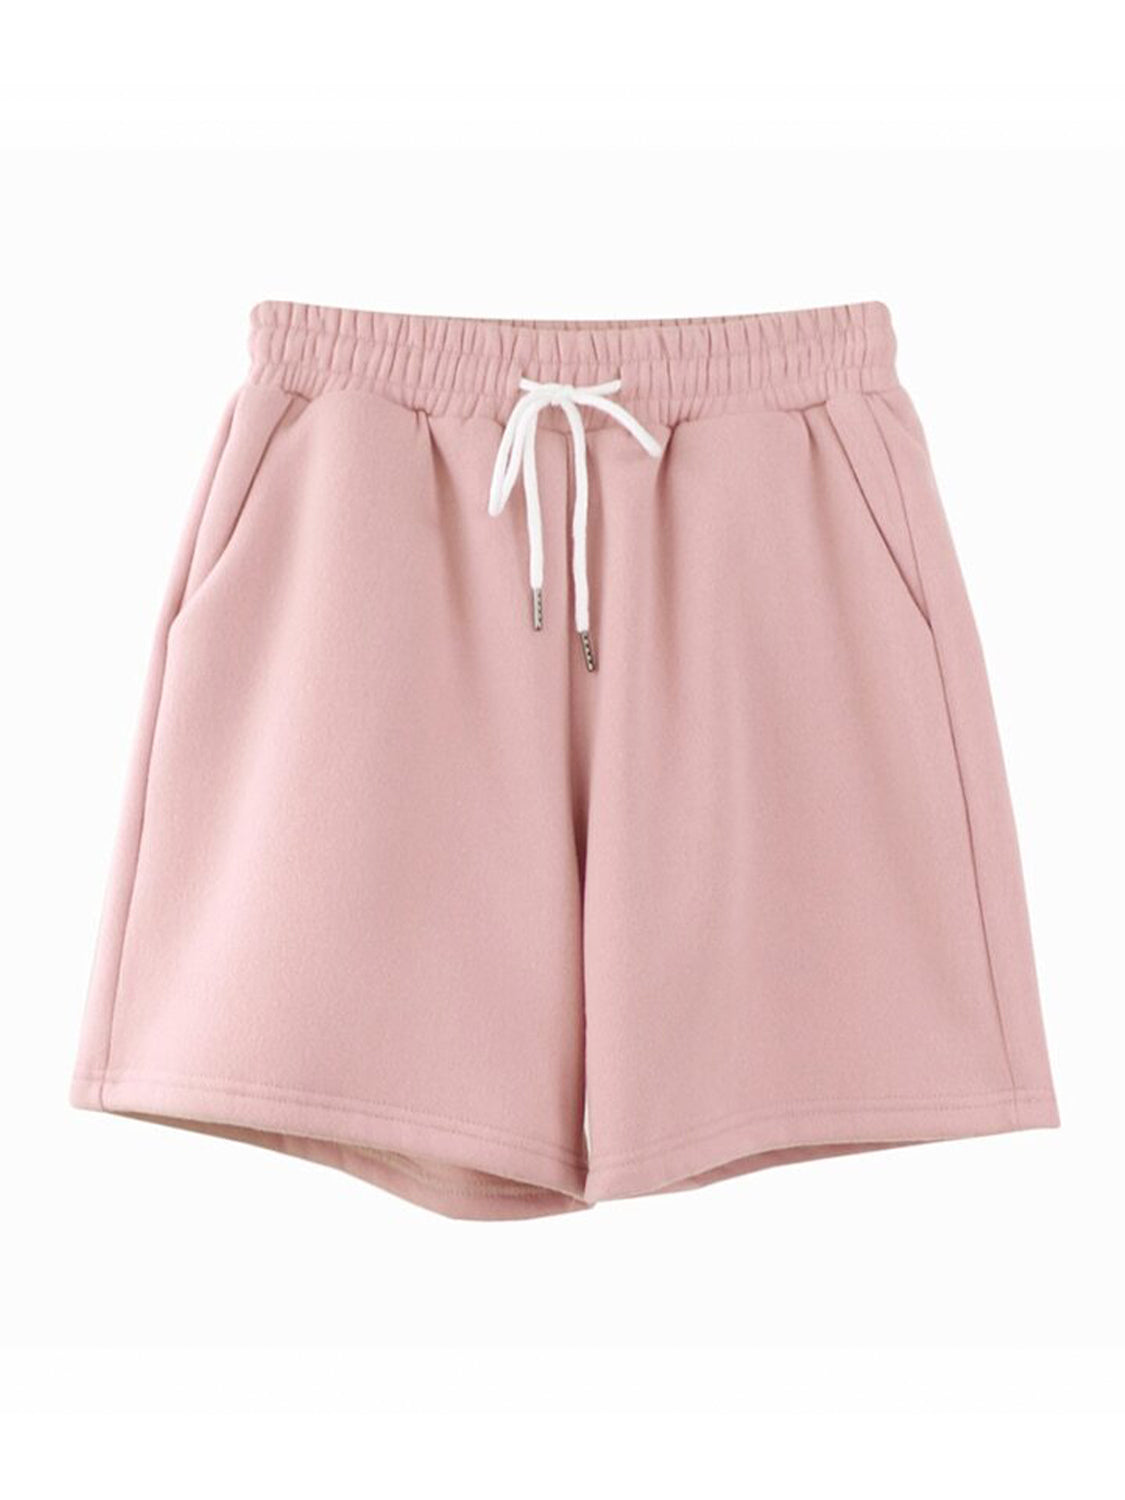 Classic Pastel Shorts